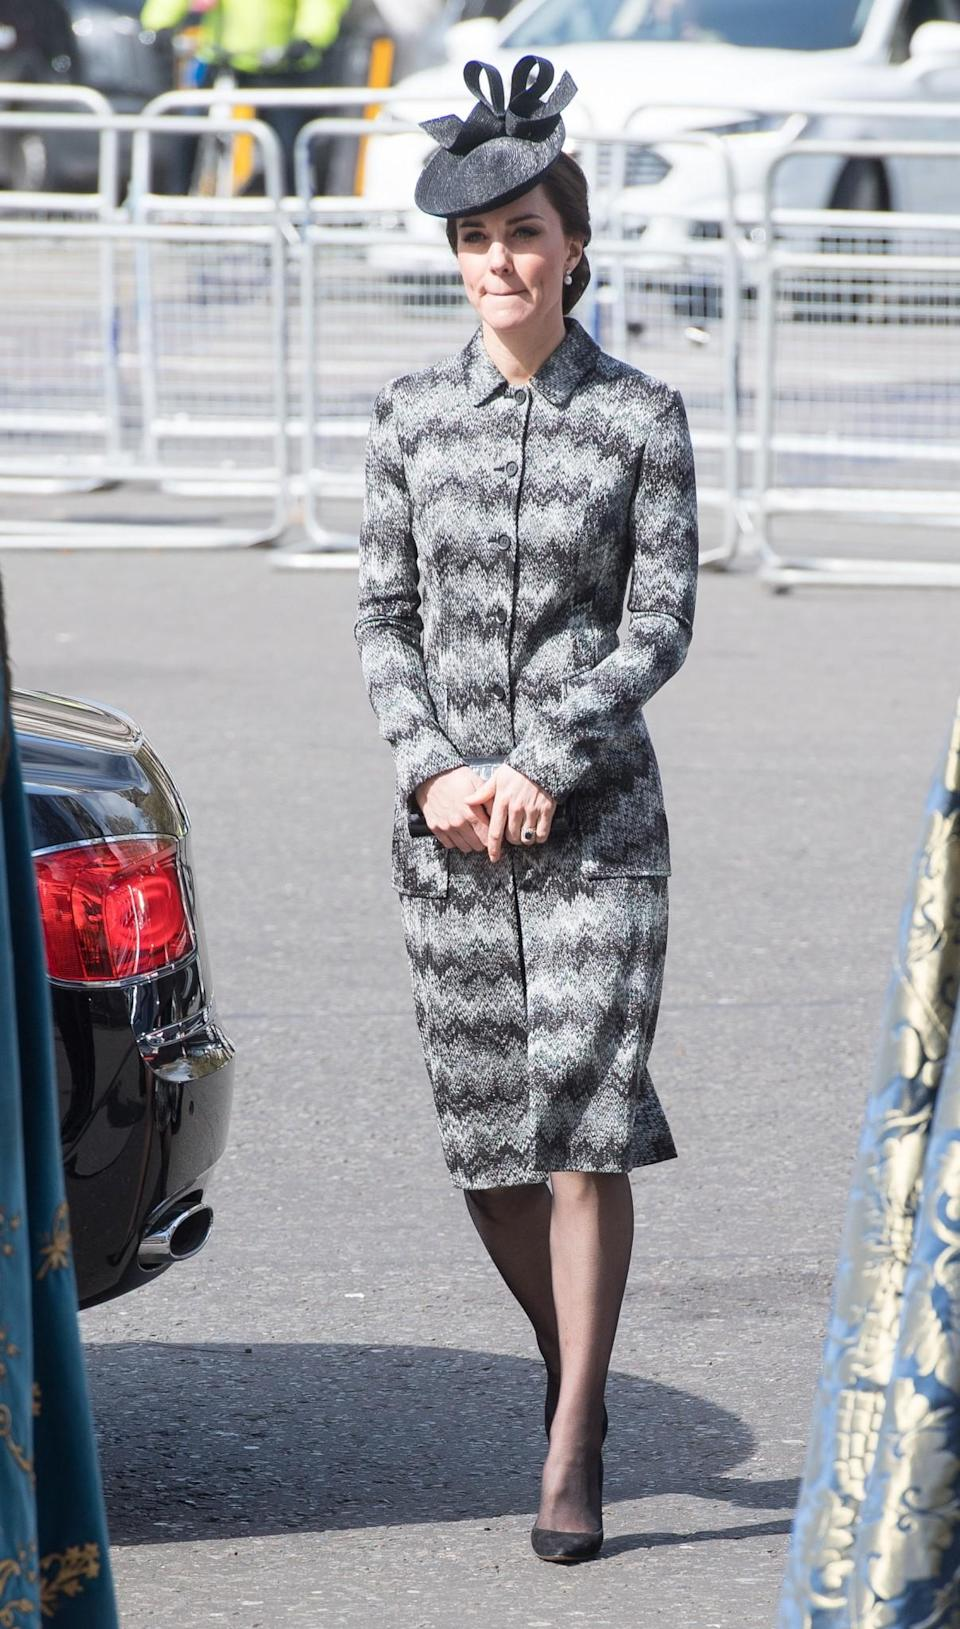 <p>The Duchess chose a suitably sombre look for a memorial service remembering the victims of the Westminster attack. She wore a zig-zag printed coat by Missoni (costing £2900) with a bow-topped black hat. A black clutch and heeled pumps added to the dark ensemble.<br><i>[Photo: PA]</i> </p>